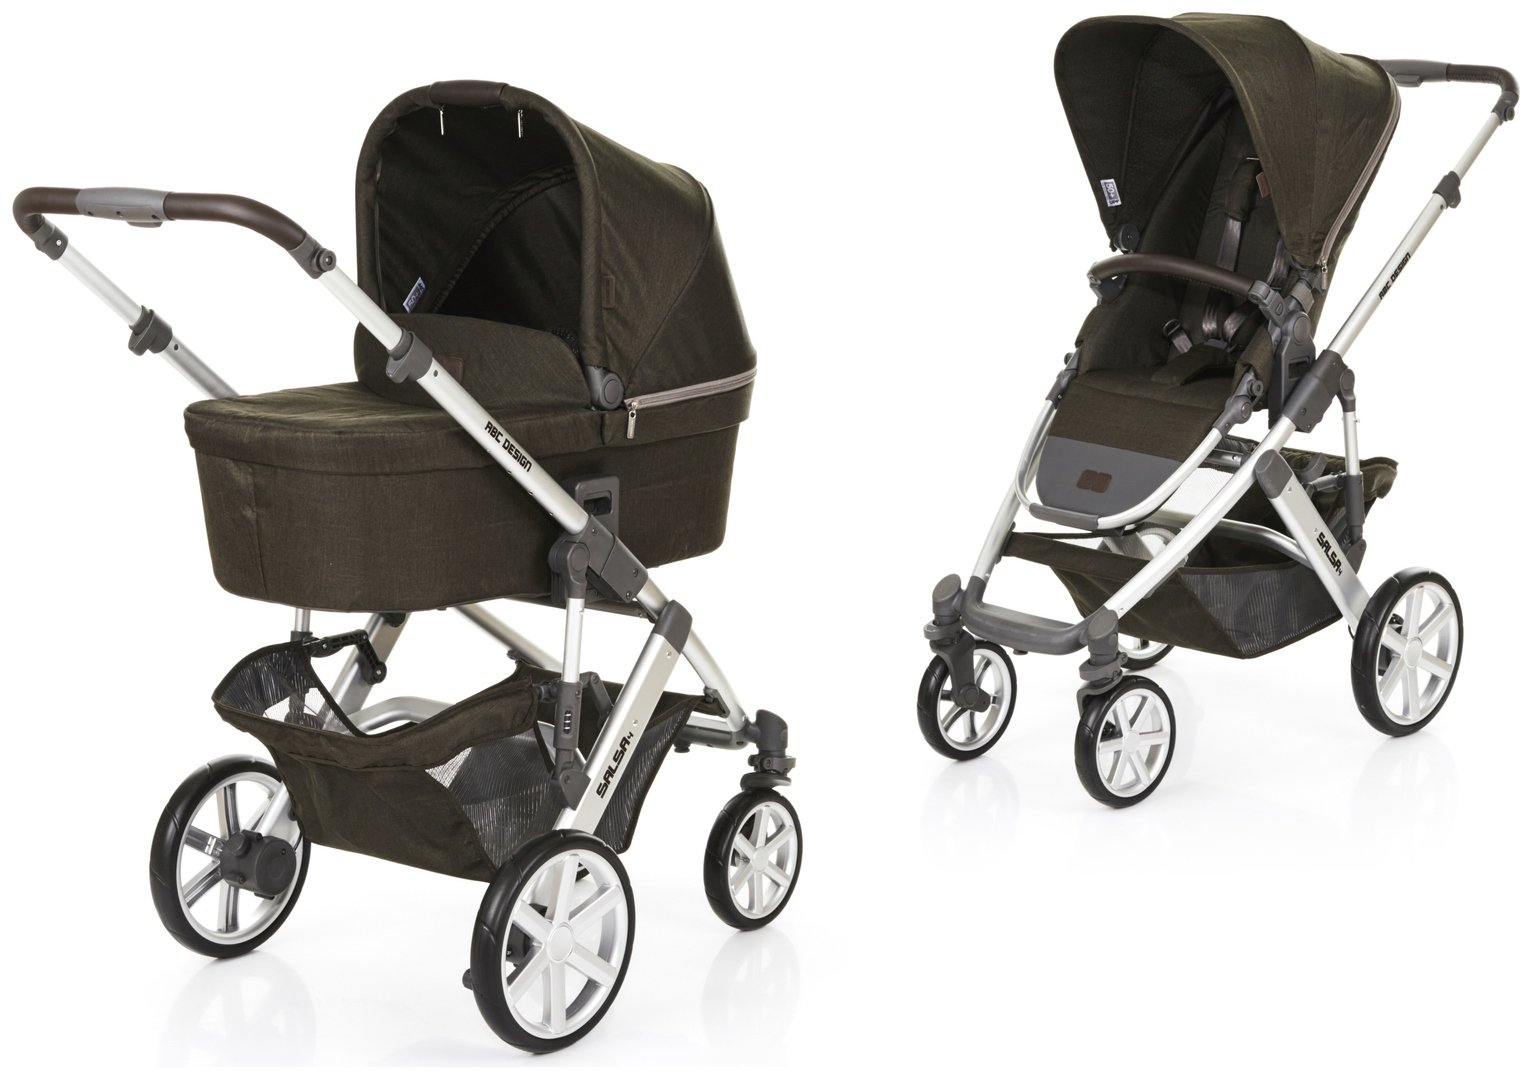 Image of ABC Design Salsa 4 Pushchair and Carrycot - Leaf